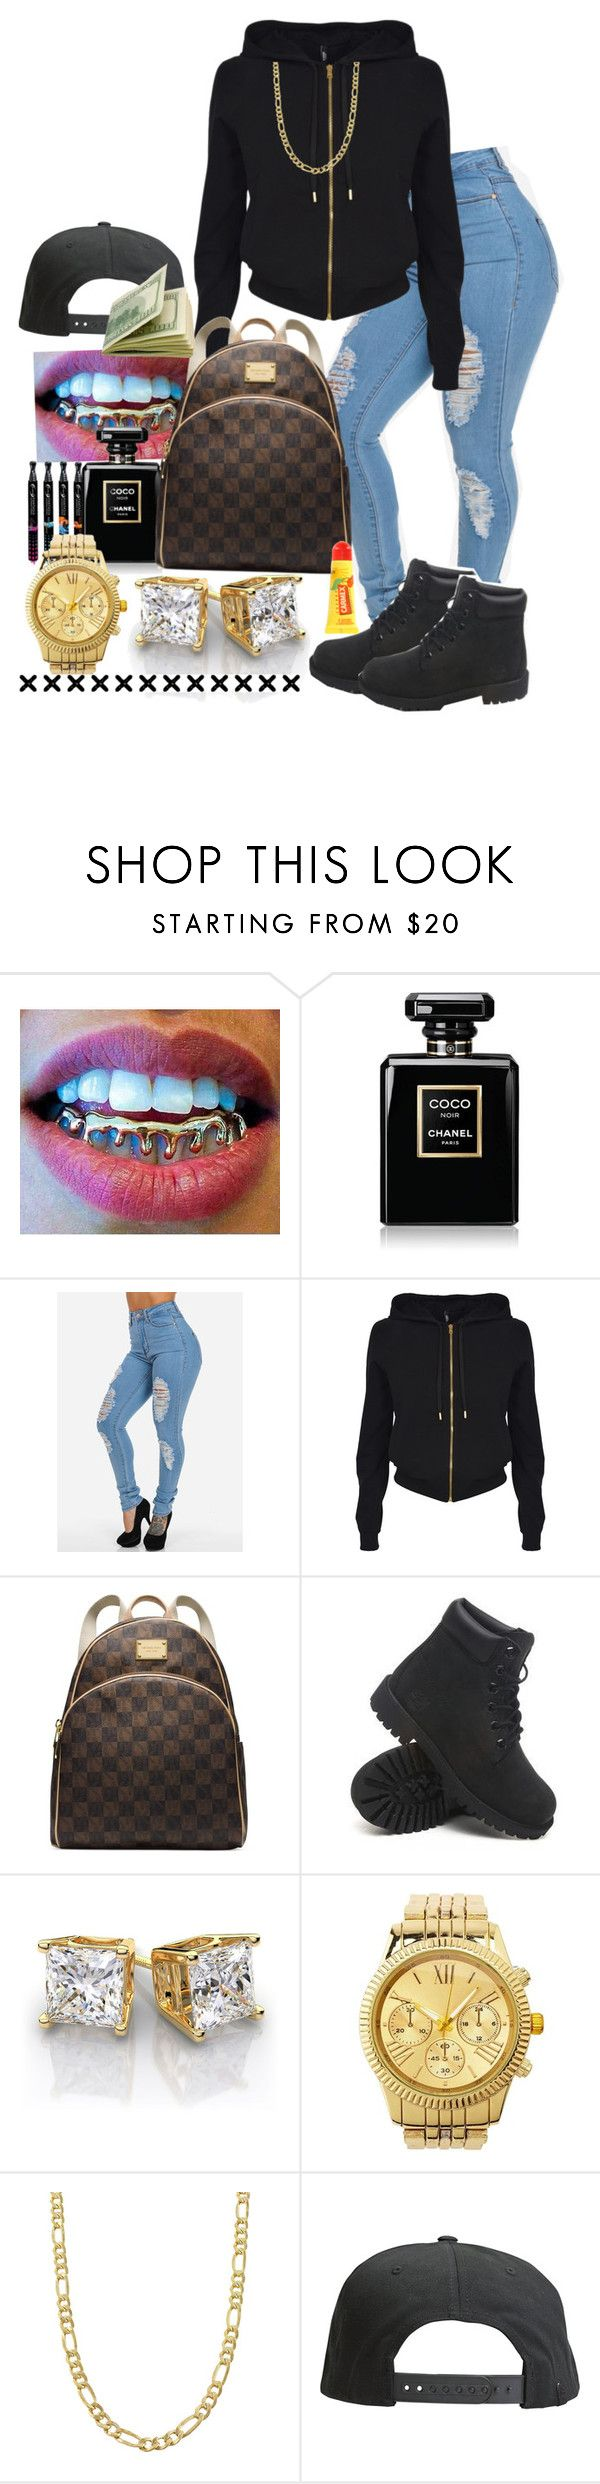 """Sumn Lite!!"" by princetonboo14312 ❤ liked on Polyvore featuring Chanel, Versus, Michael Kors, Timberland, Charlotte Russe, Fremada, Tavik Swimwear and Carmex"